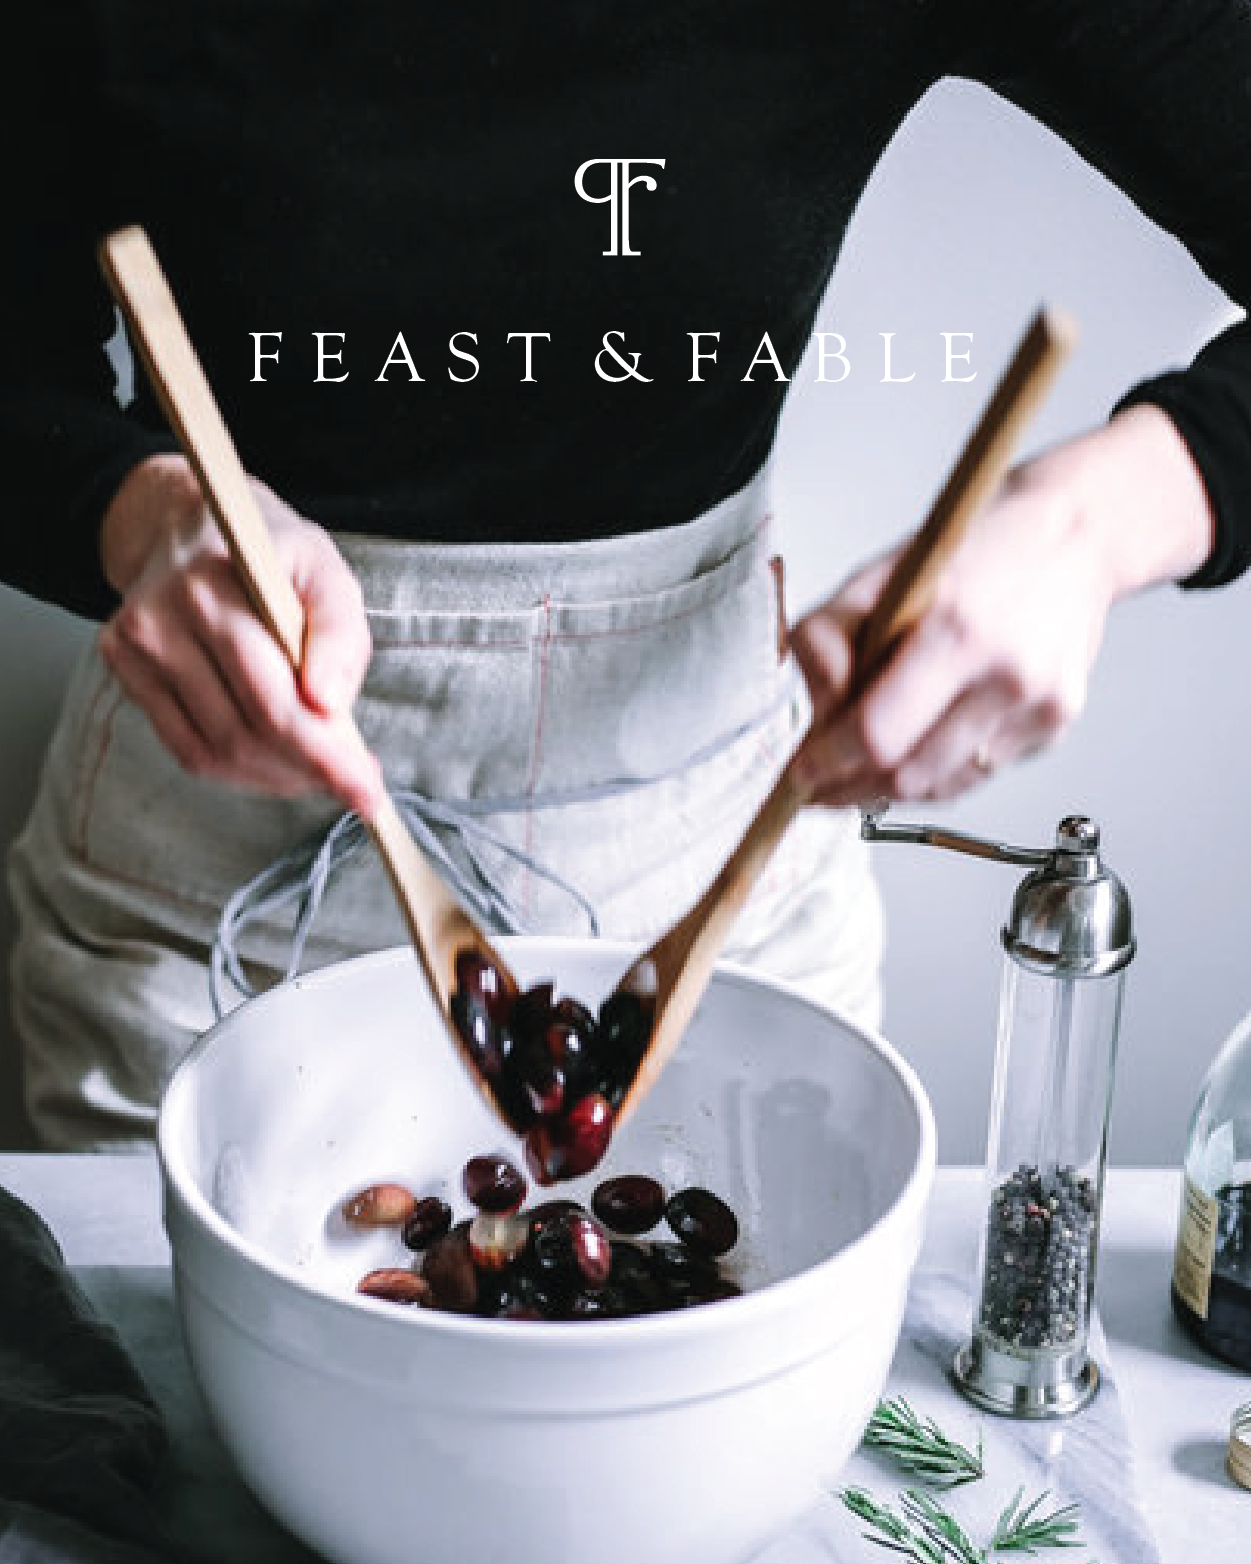 Feast & Fable  | Branding   Feast and Fable is devoted to exploring food as nourishment, for the body and soul, and how it finds its ways into all our best stories. It's about setting the table, pouring the good wine and learning from it all.